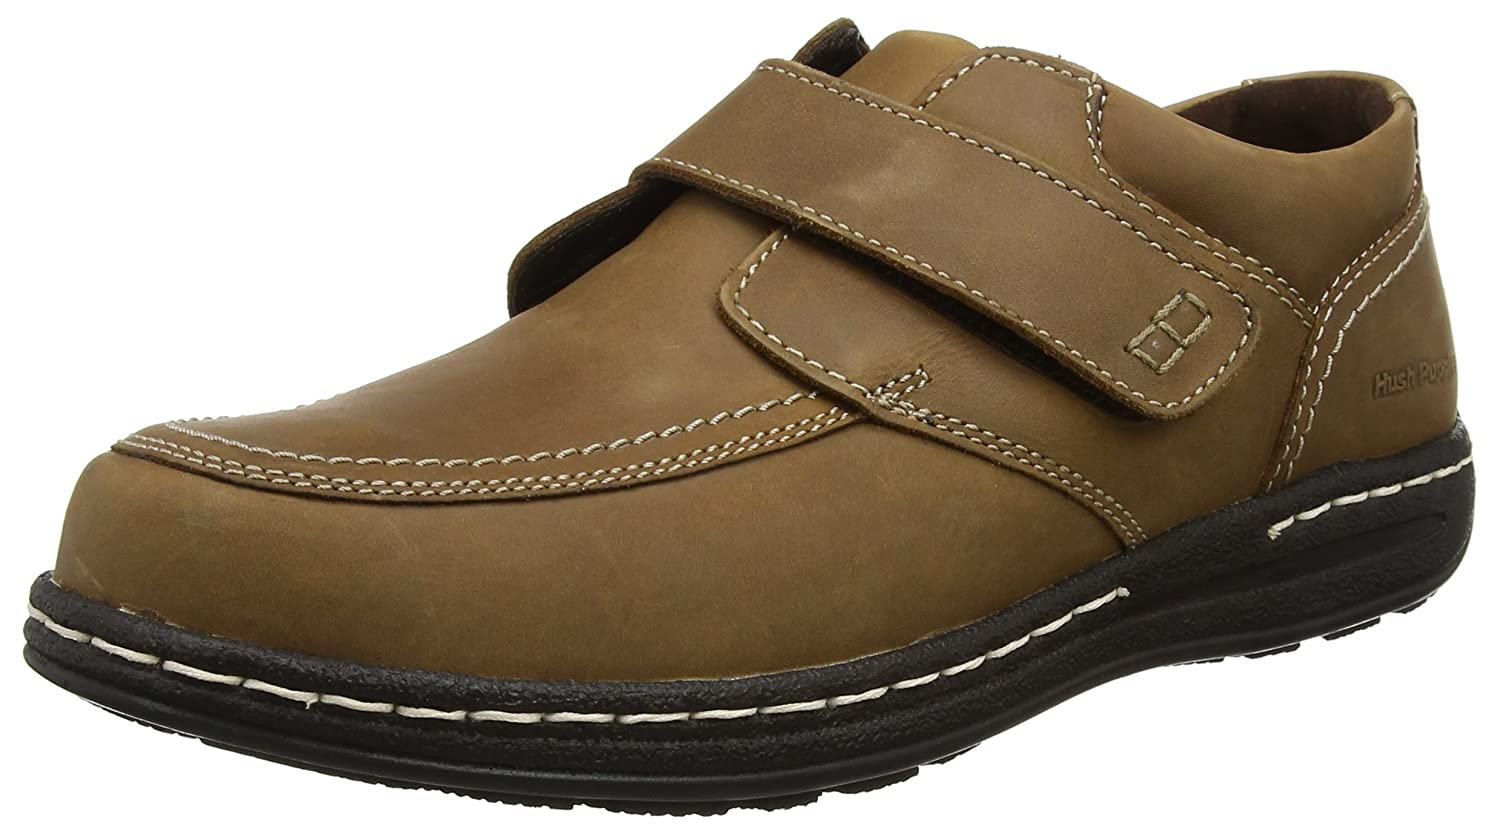 Hush Puppies Vince Victory, Mocasines para Hombre 45 EU|Marrón (Dark Tan)